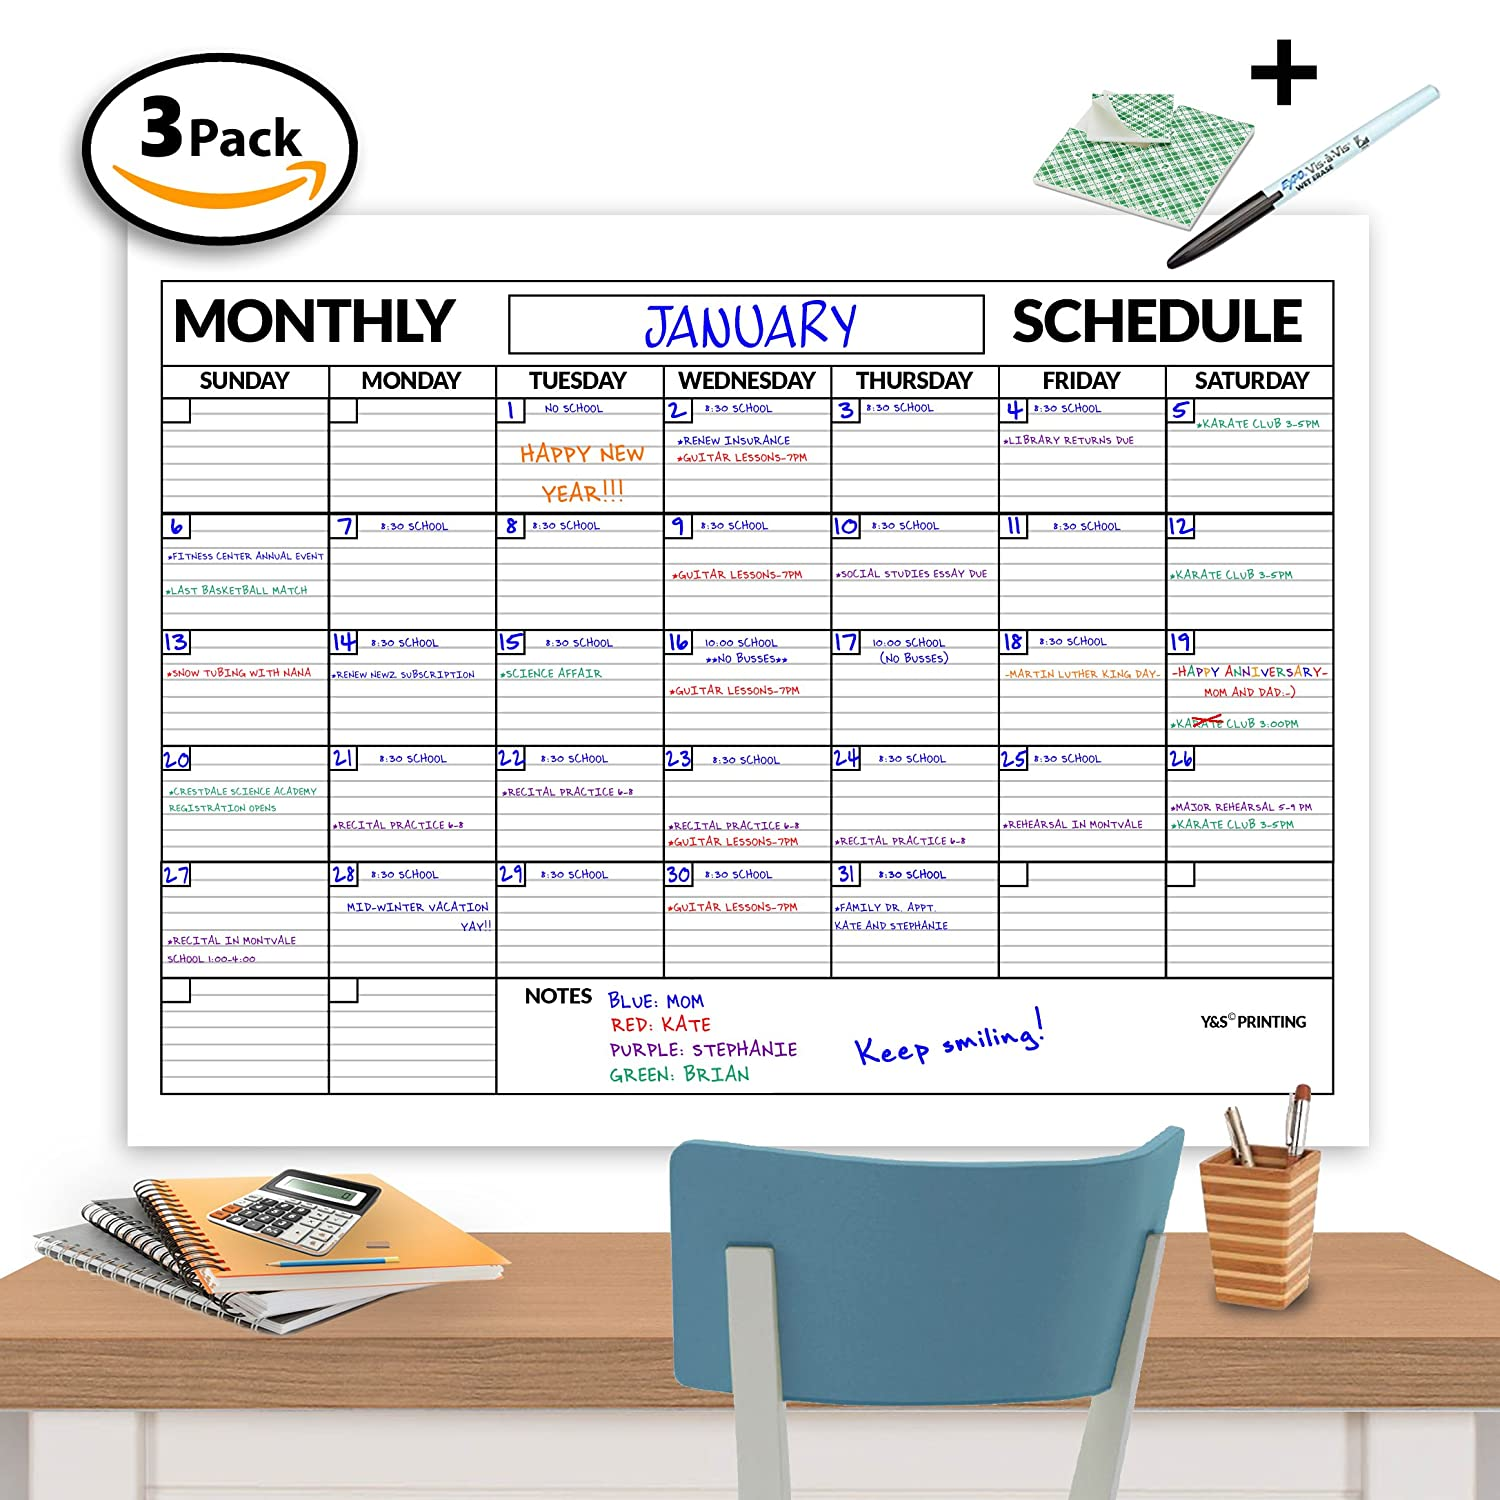 Large Dry Erase Poster Board Laminated Classroom Monthly Wall Calendar, 36-in by 48-in Y&S Printing